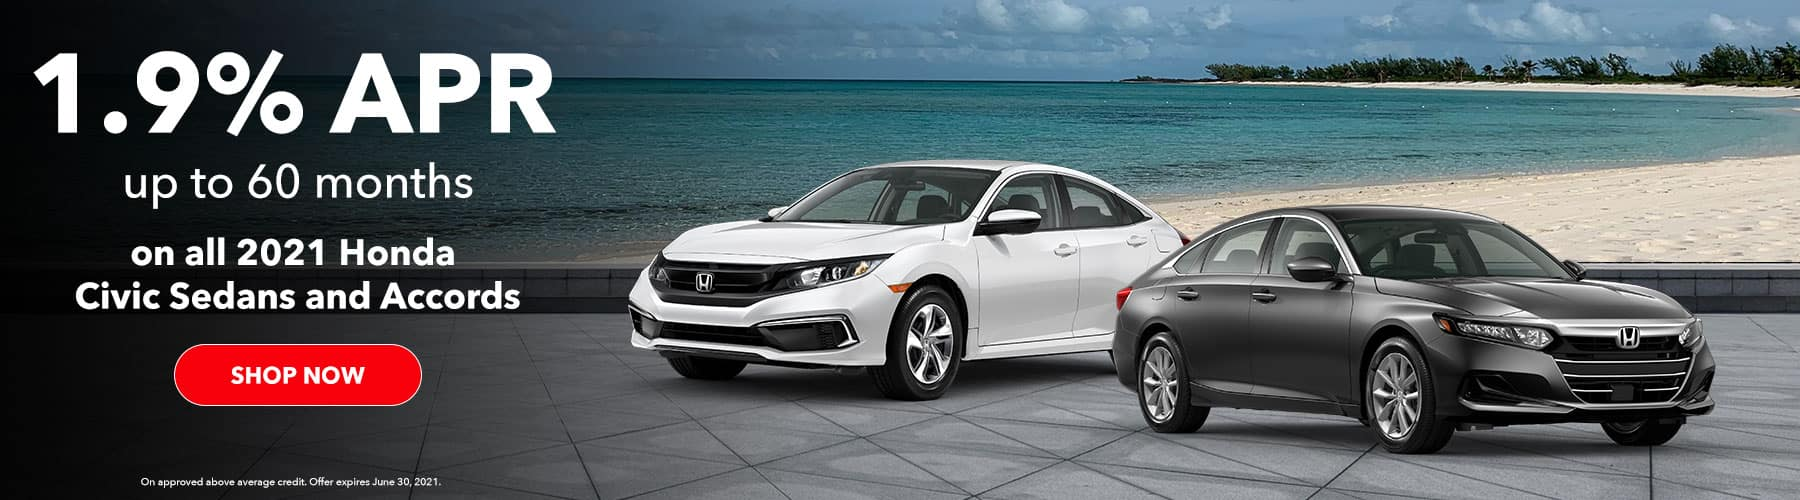 1.9% APR up to 60 months on all 2021 Honda Civic Sedans and Accords – On approved above average credit. Offer expires June 30, 2021.